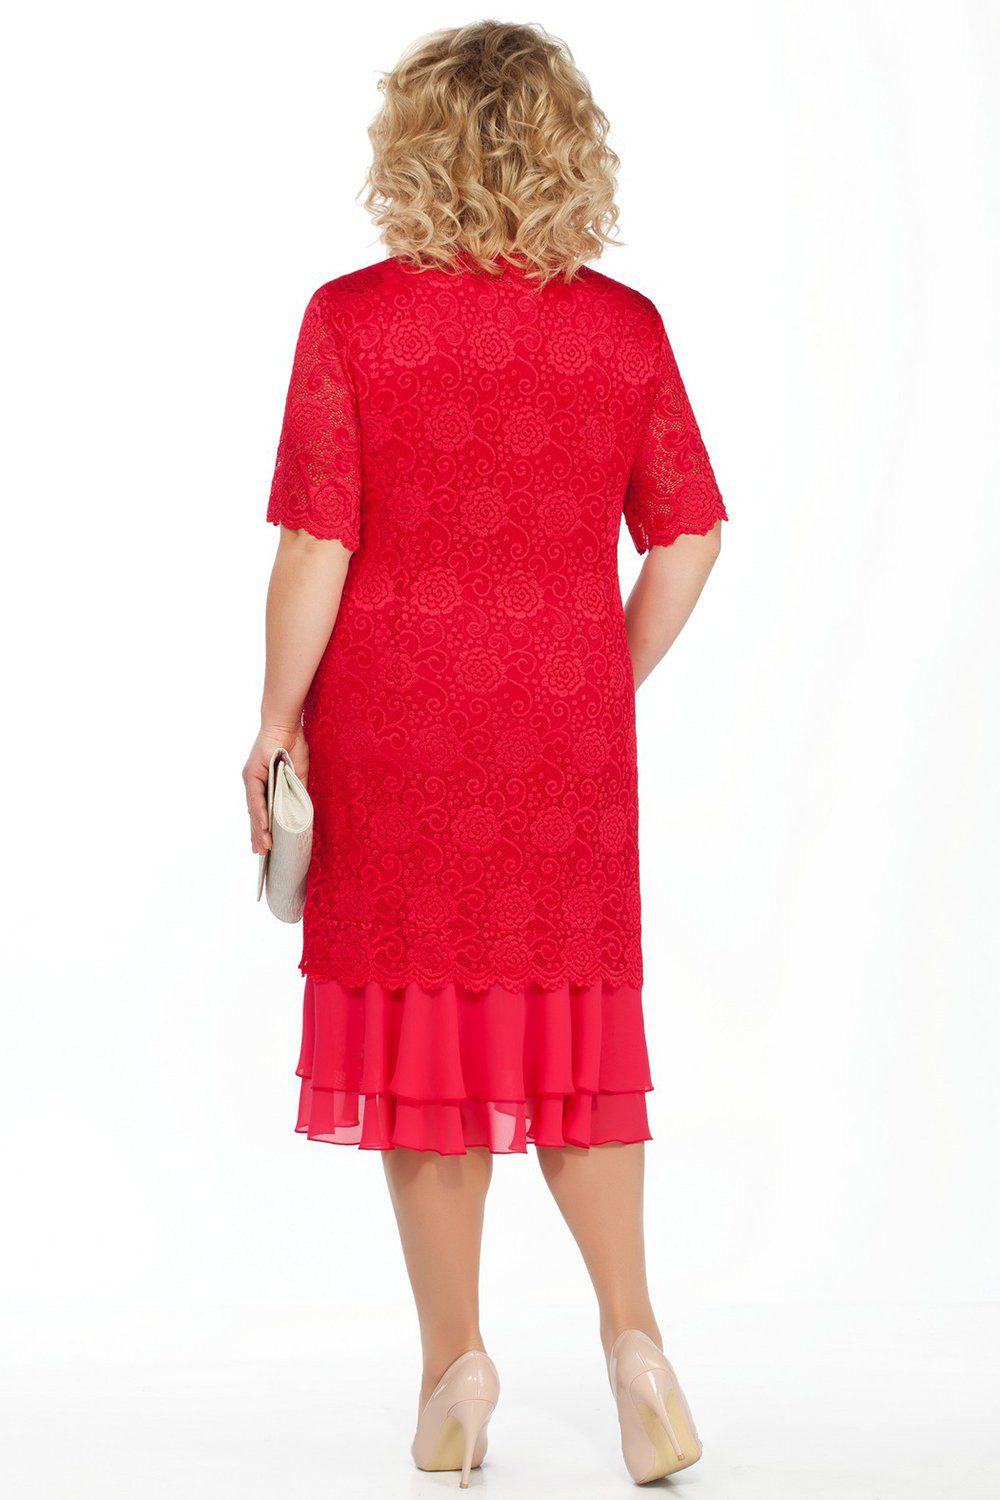 Madre Elegant Lace Mother Of The Bride Dresses New 2020 Royal Navy Blue Red Wedding Party Dresses Vestido Marsala Madrinha